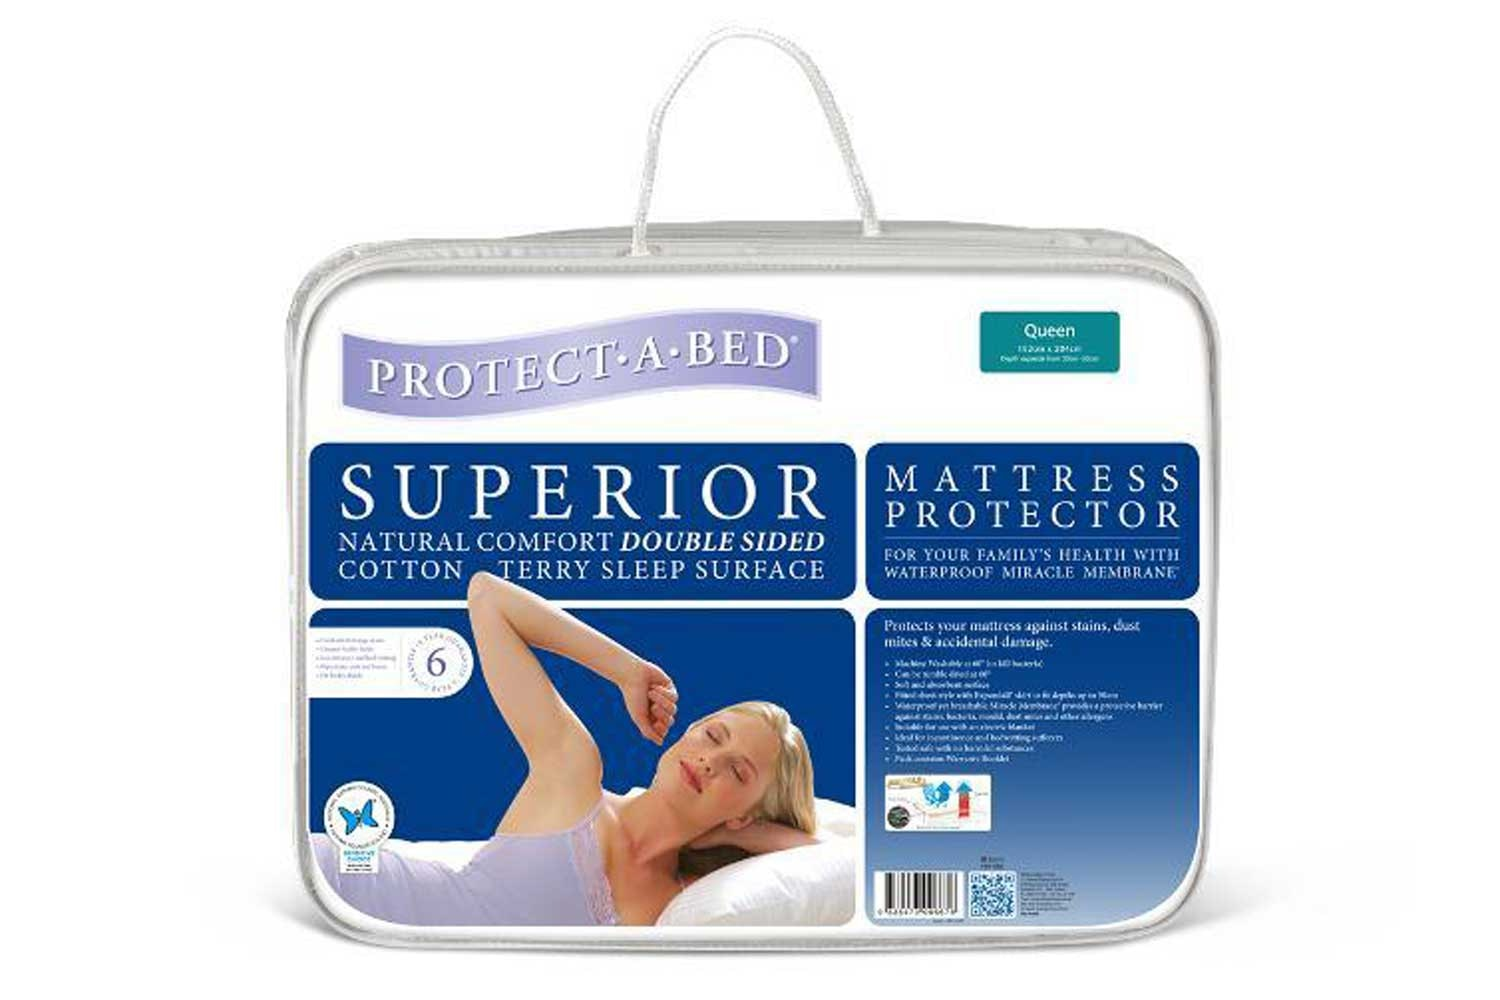 Mattress Protector by Protectabed